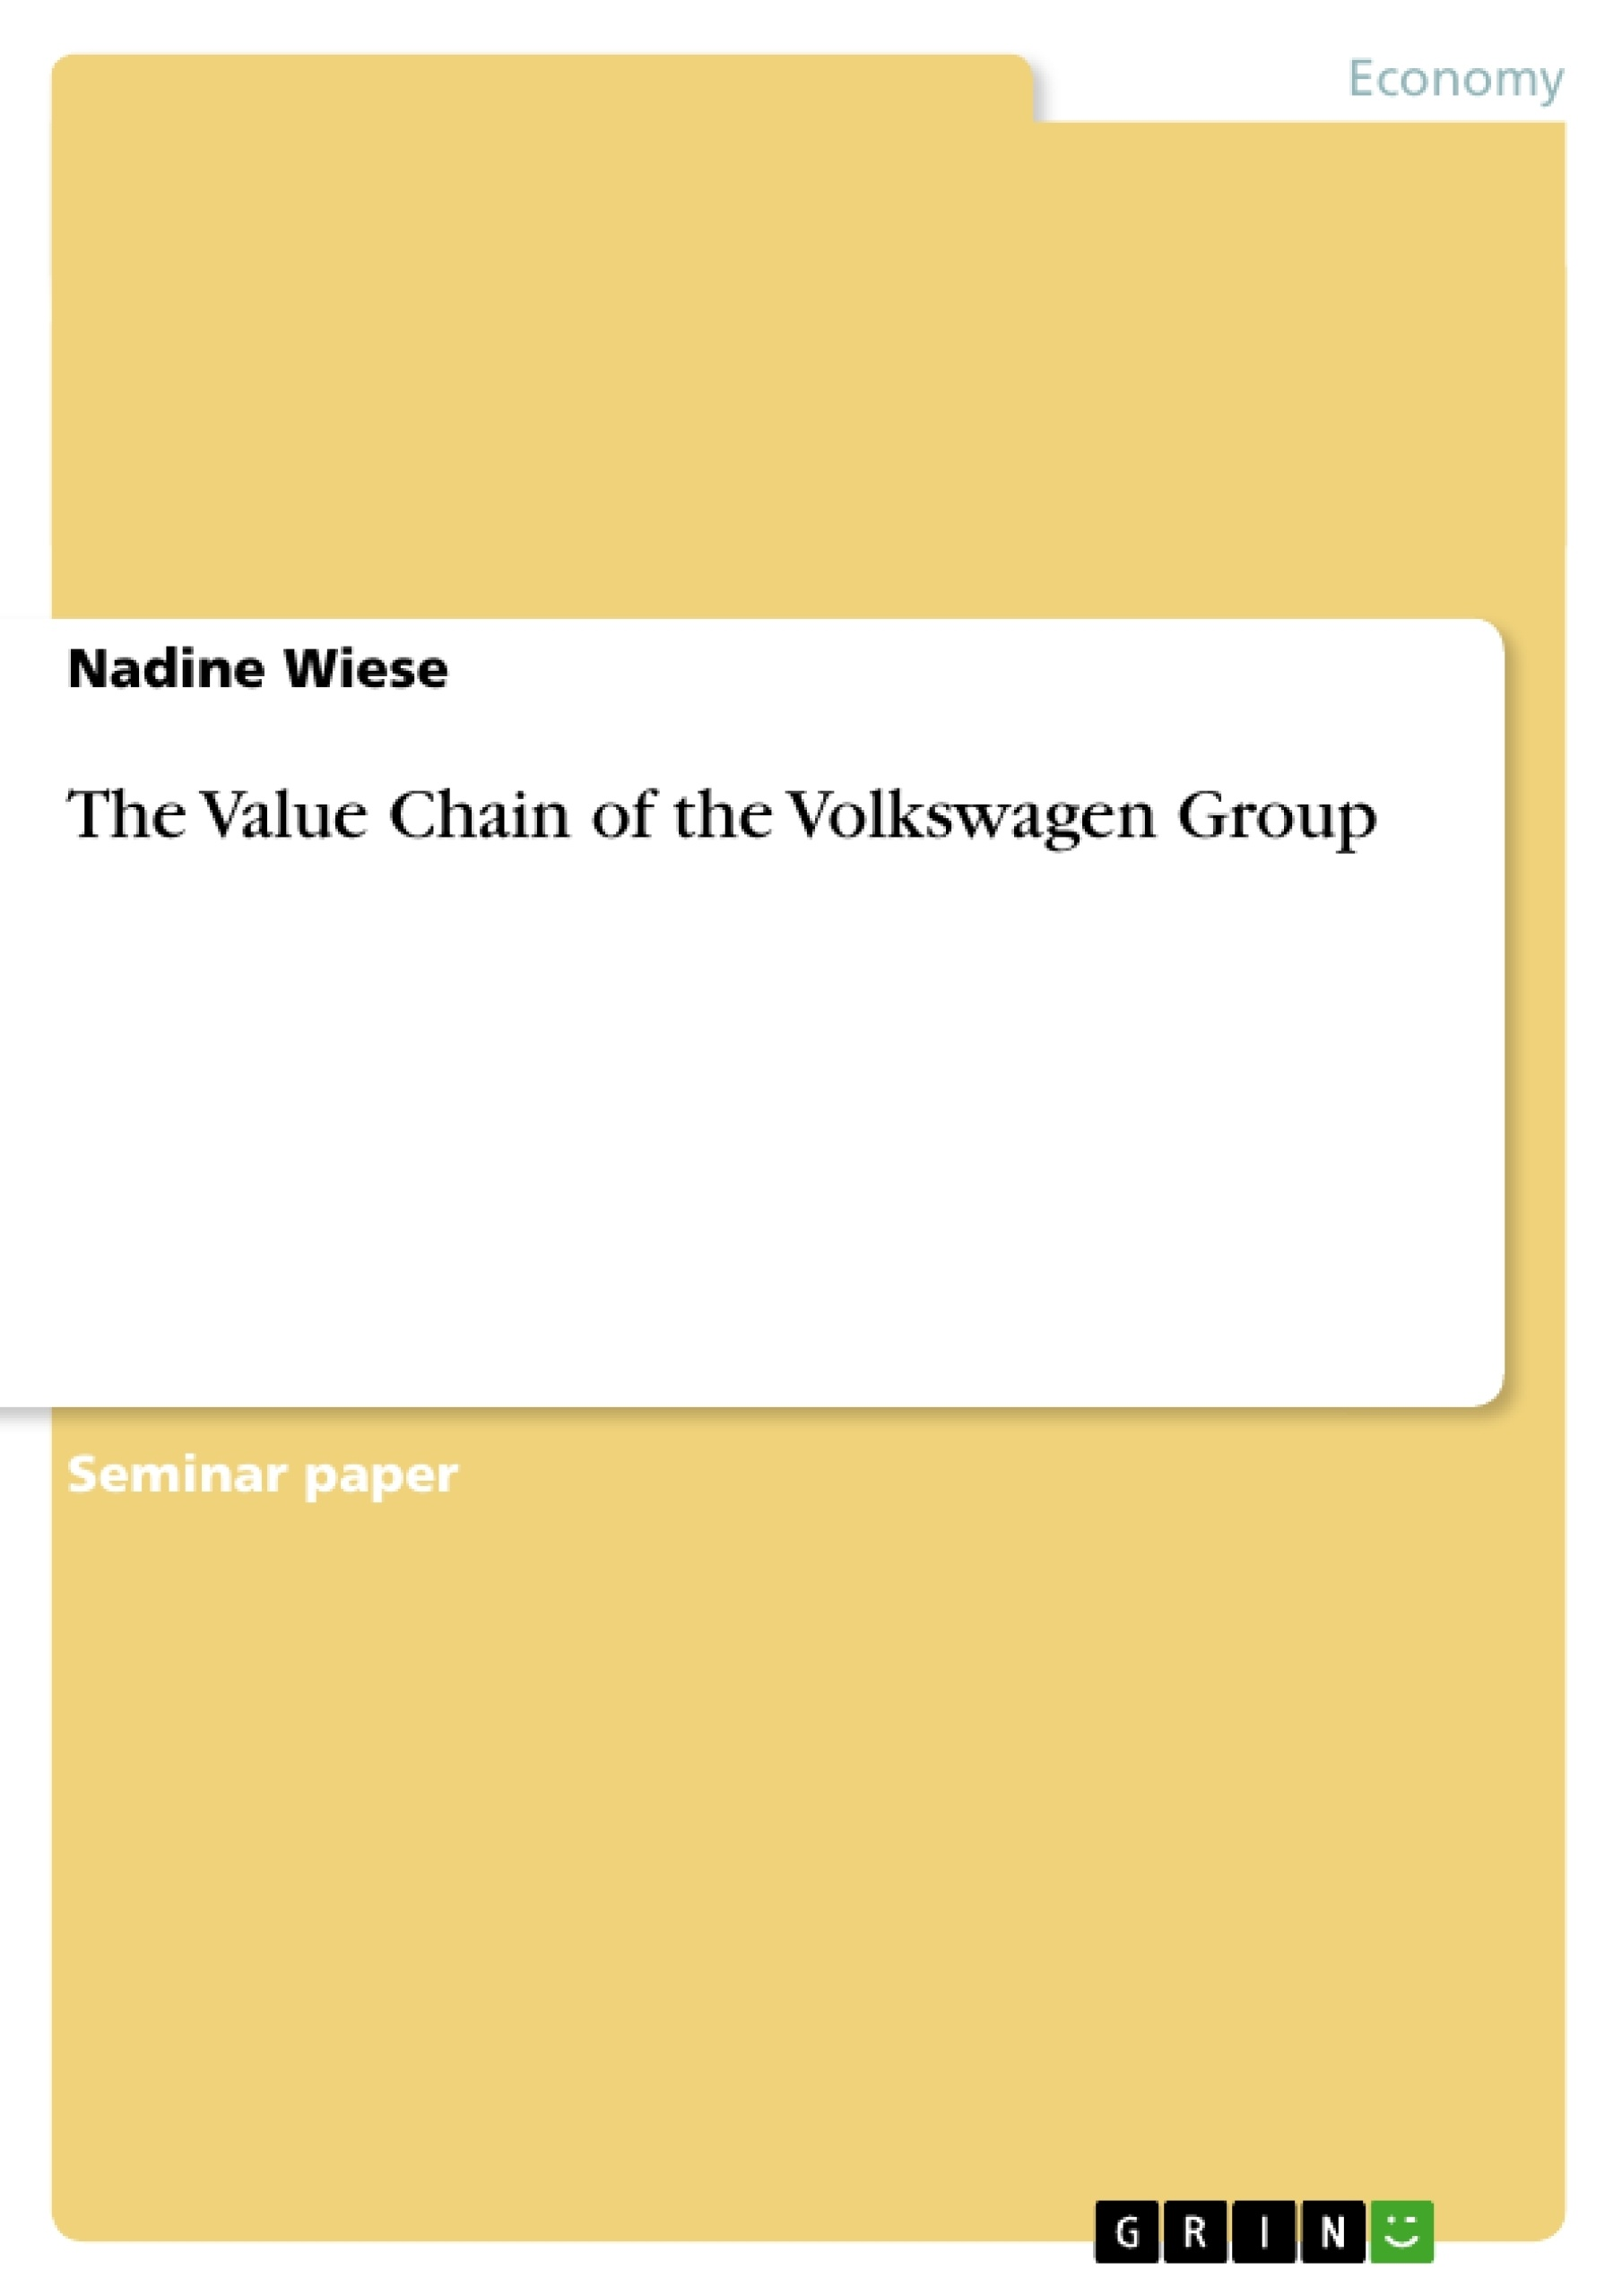 "volkswagen ag essay By 2018 the volkswagen group aims to be the most successful electrifying china with a tailor-made efficiency strategy essay ""when the wind of change blows."